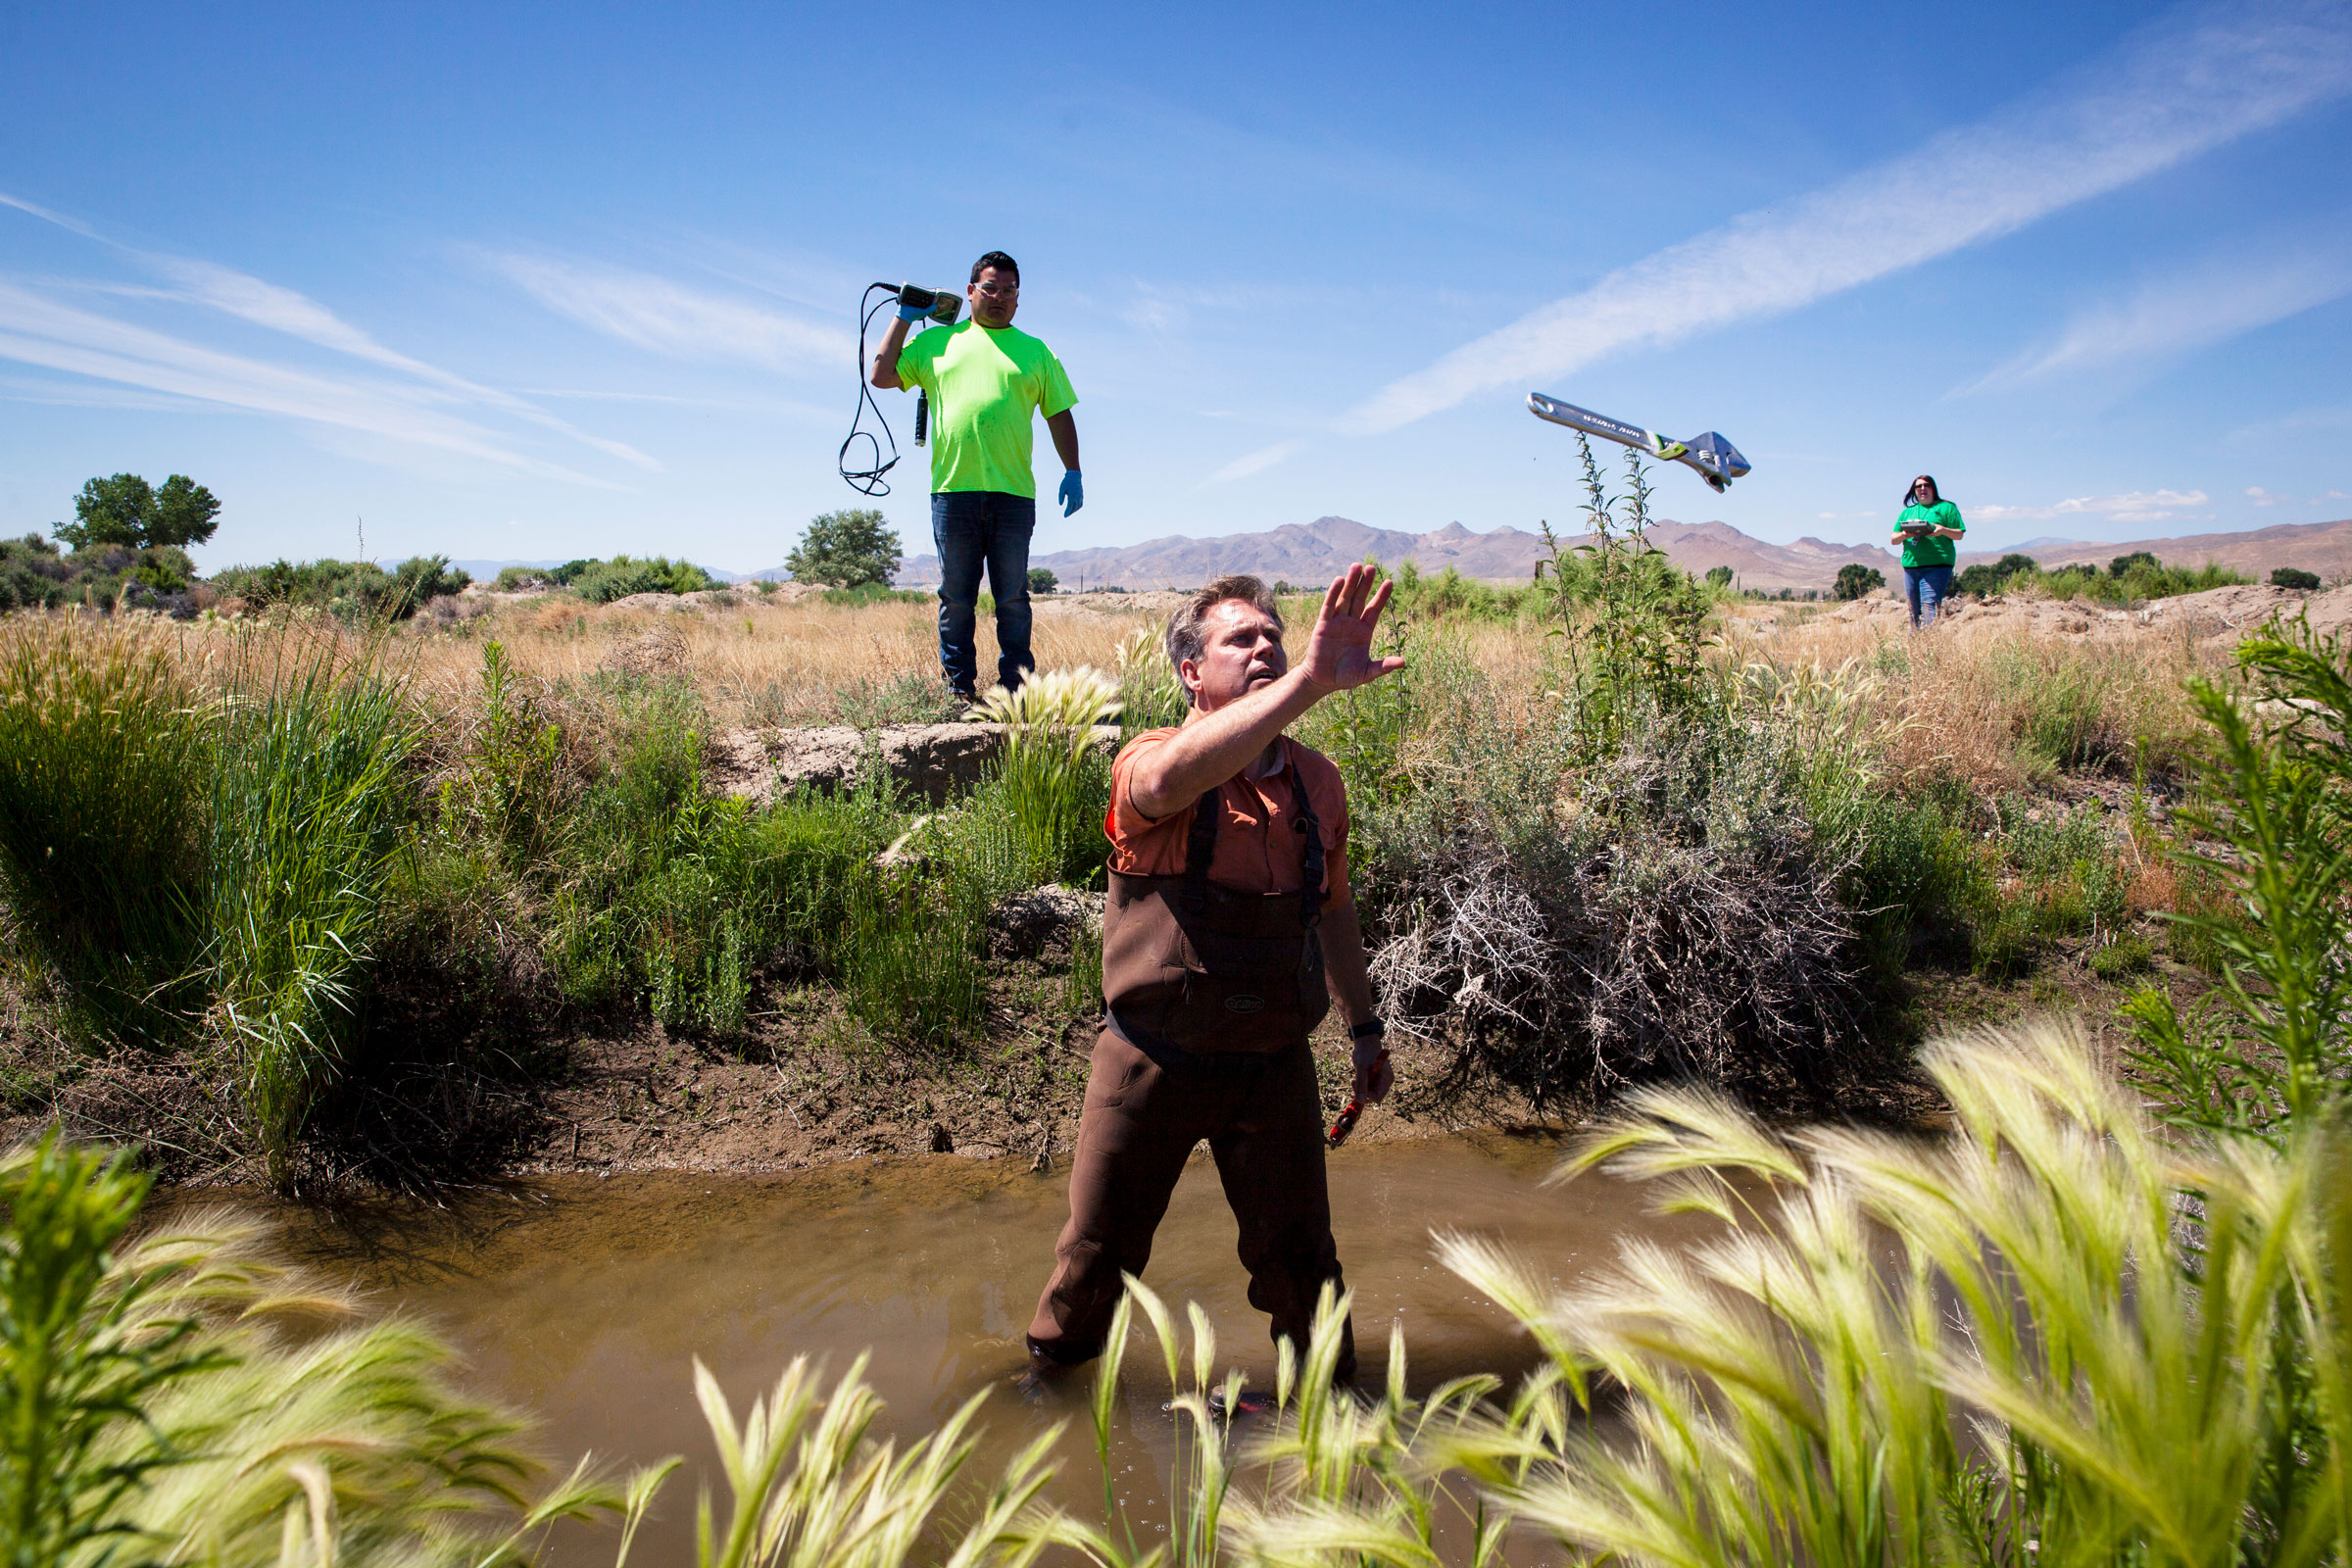 Dietrick McGinnis, environmental consultant for the Yerington Paiute Tribe, tests the water from the Tribal Wetlands. High levels of uranium, arsenic, and other toxins have been found in groundwater on the reservation. Maggie Starbard